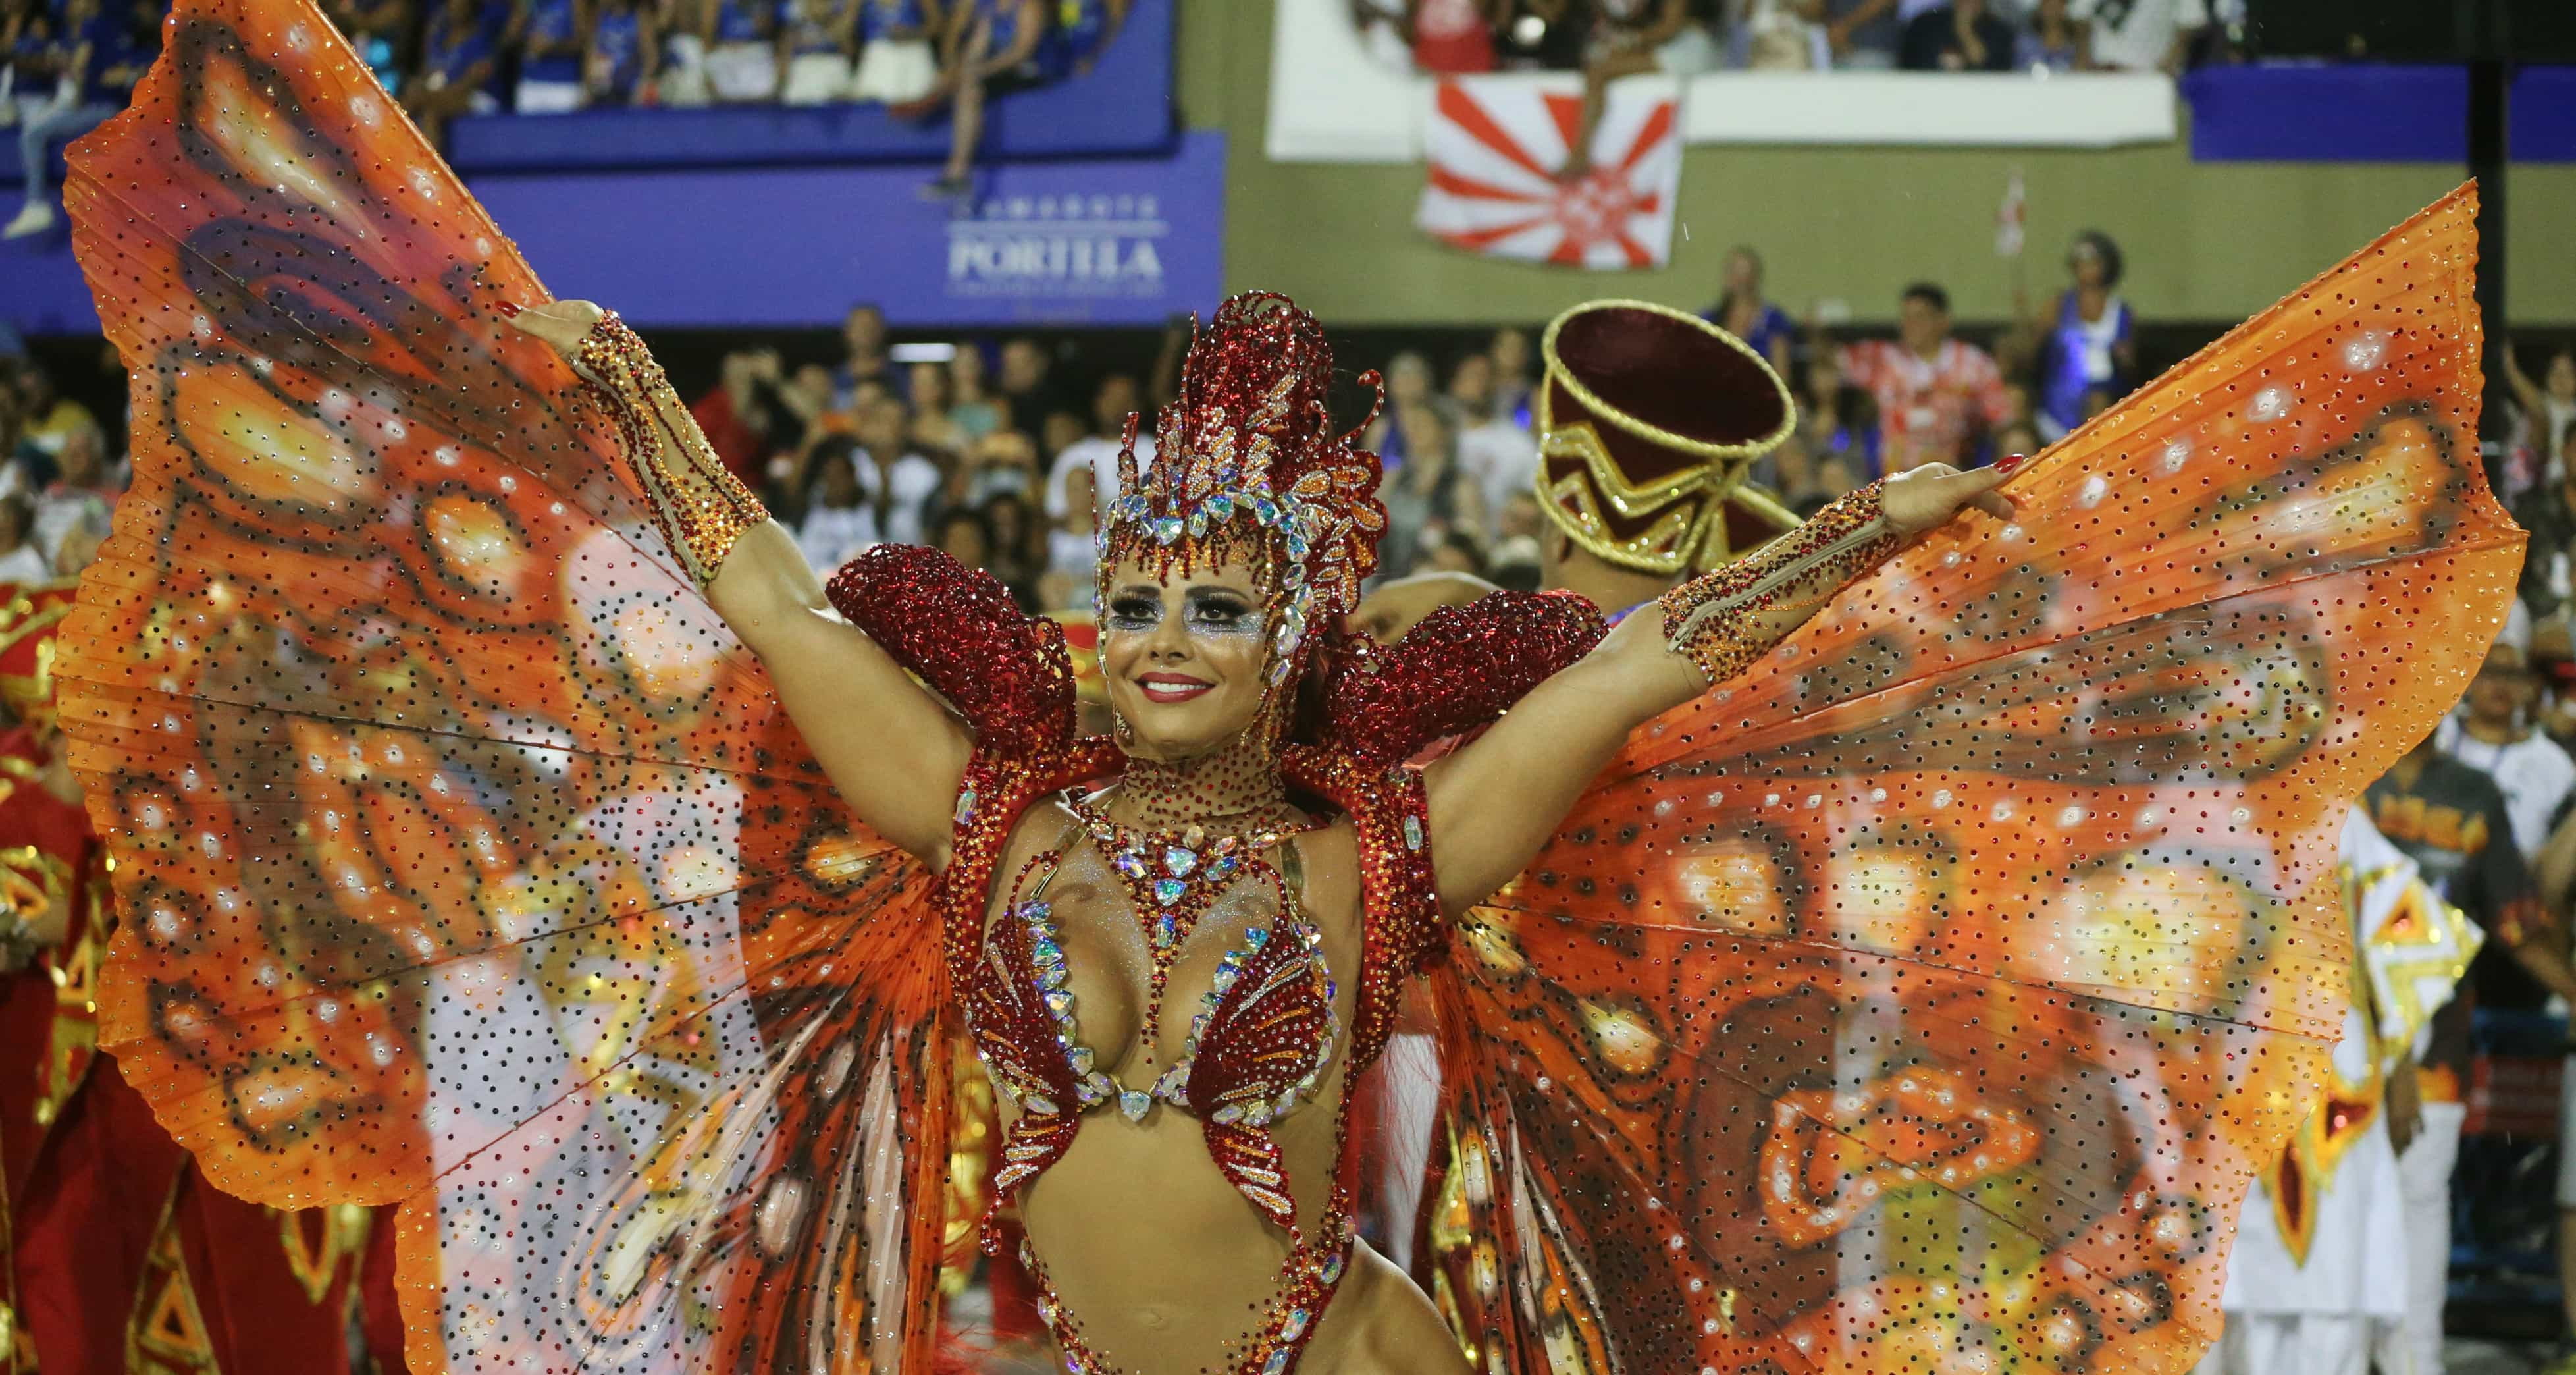 As musas do Carnaval do Brasil